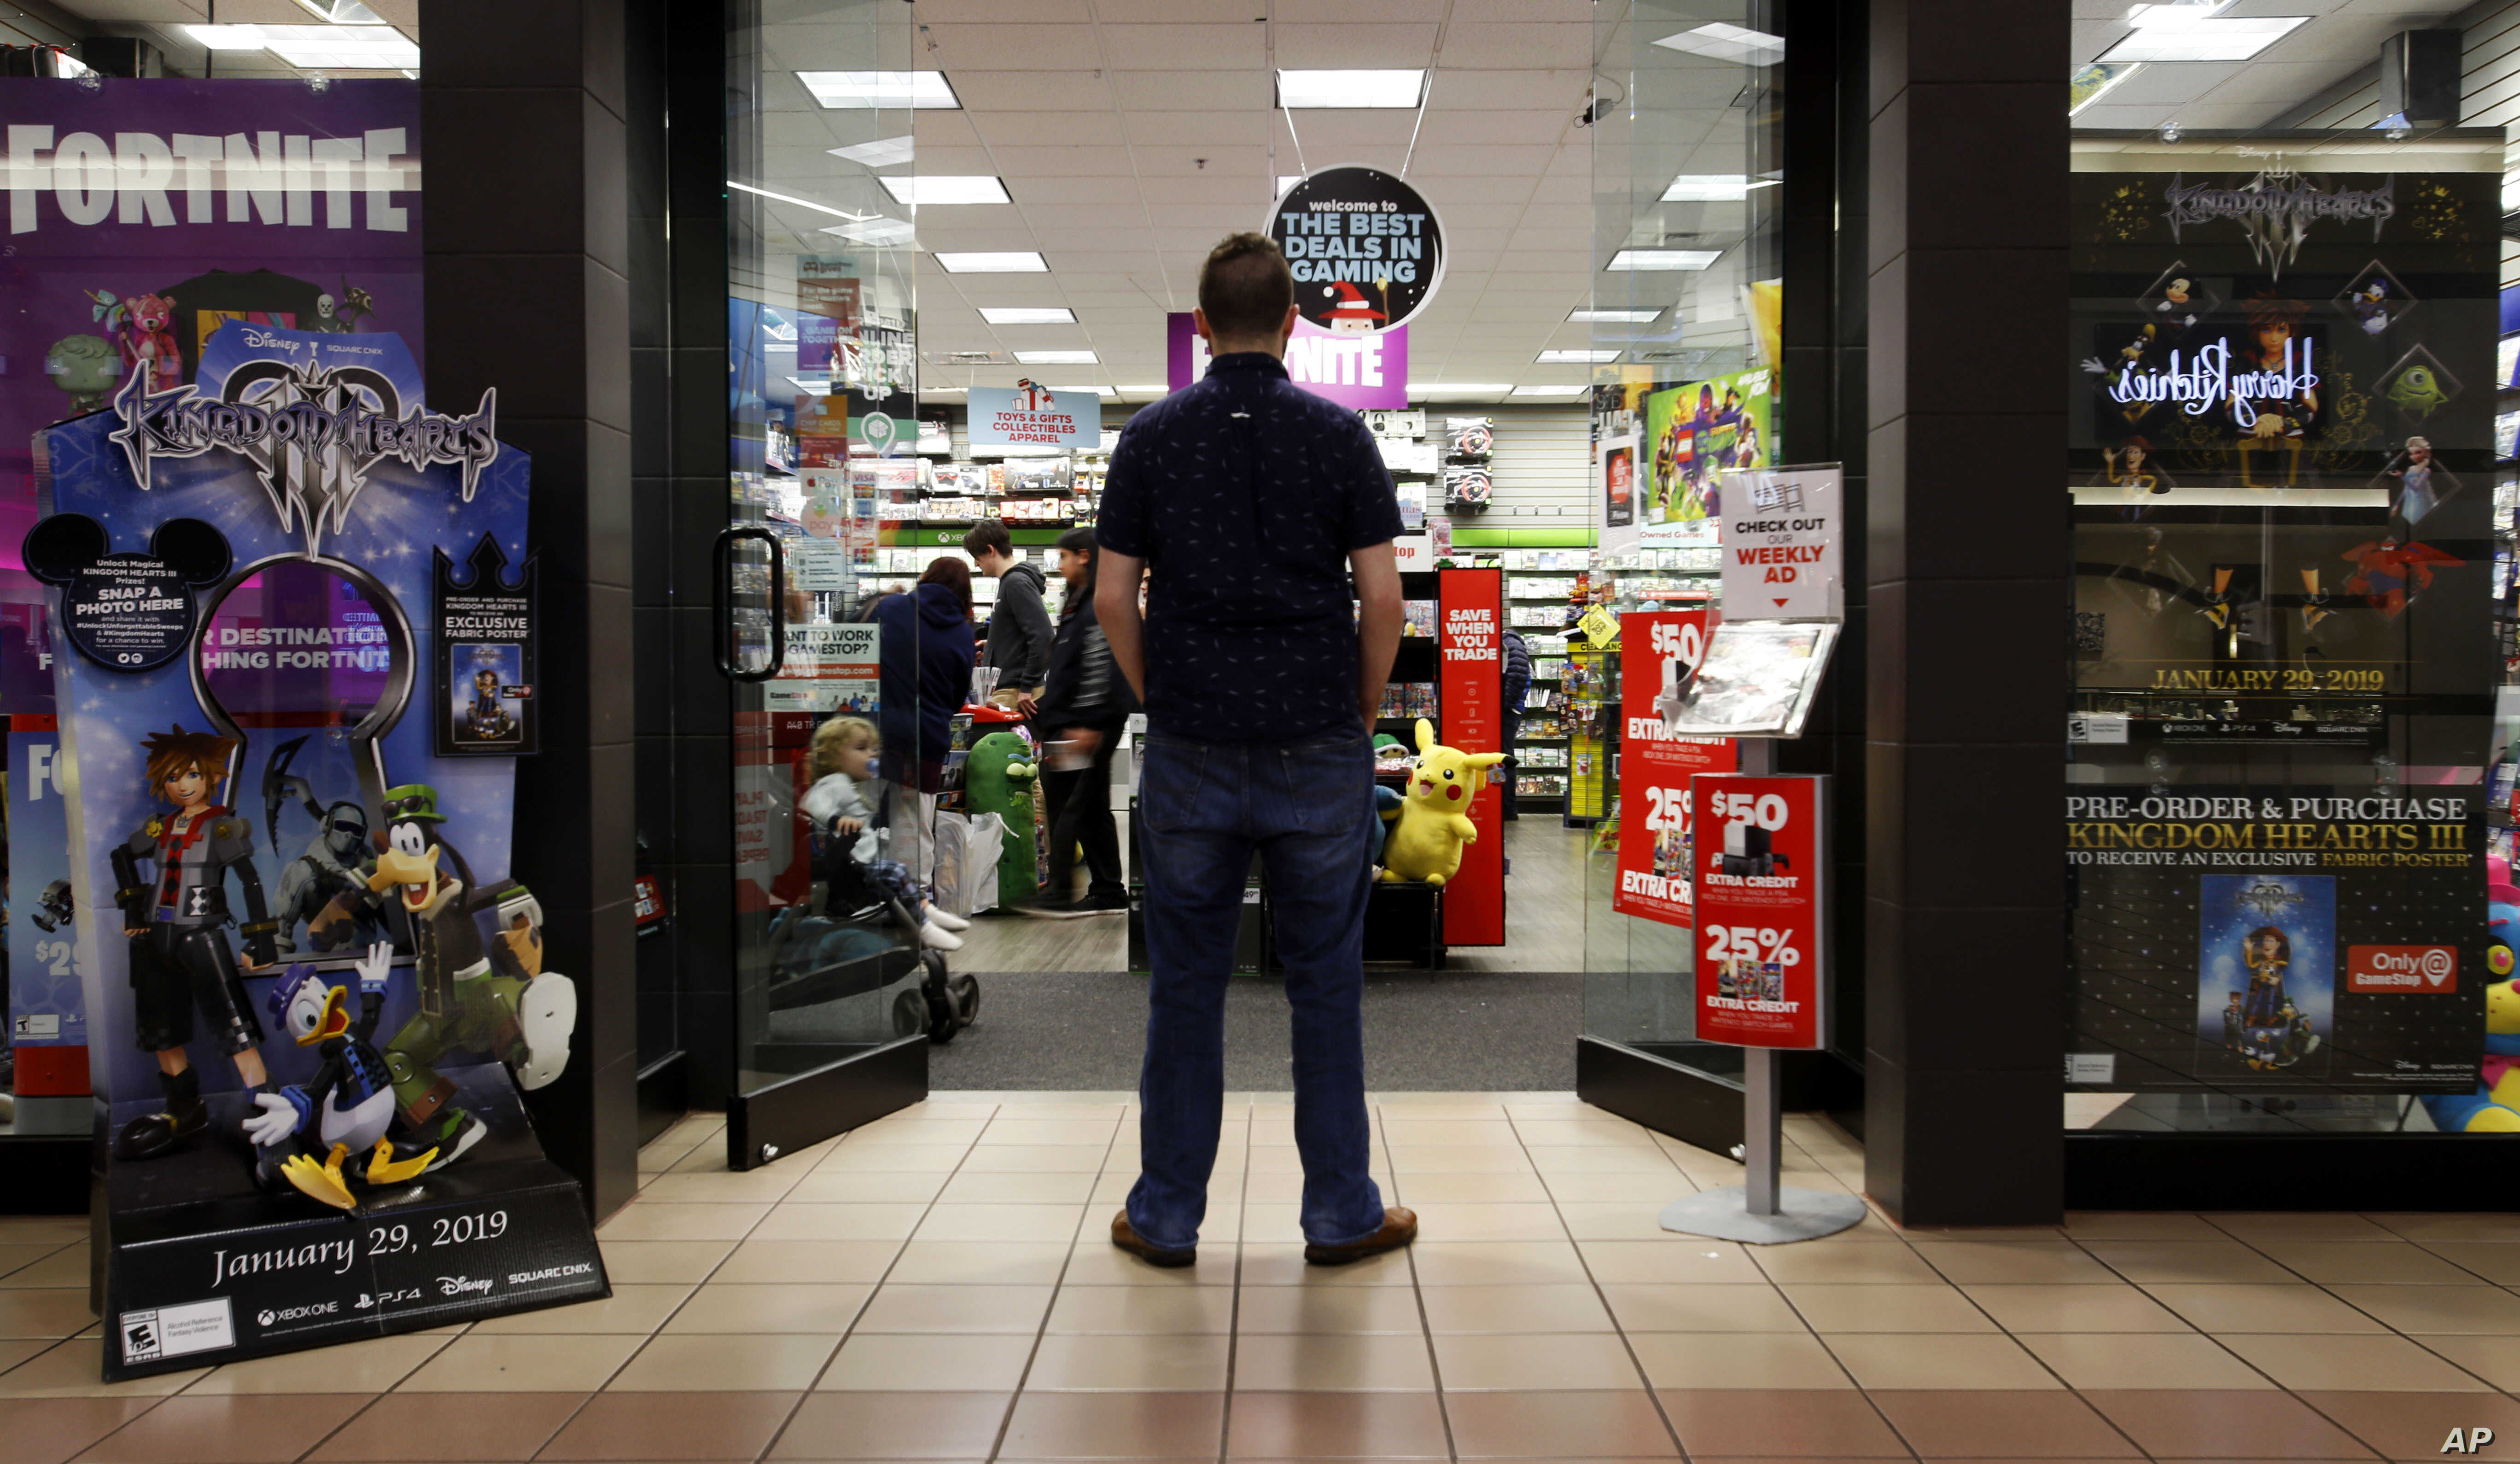 FILE - A 27-year-old self-described tech addict poses for a portrait in front of a video game store at a mall in Everett, Wash., Dec. 9, 2018.